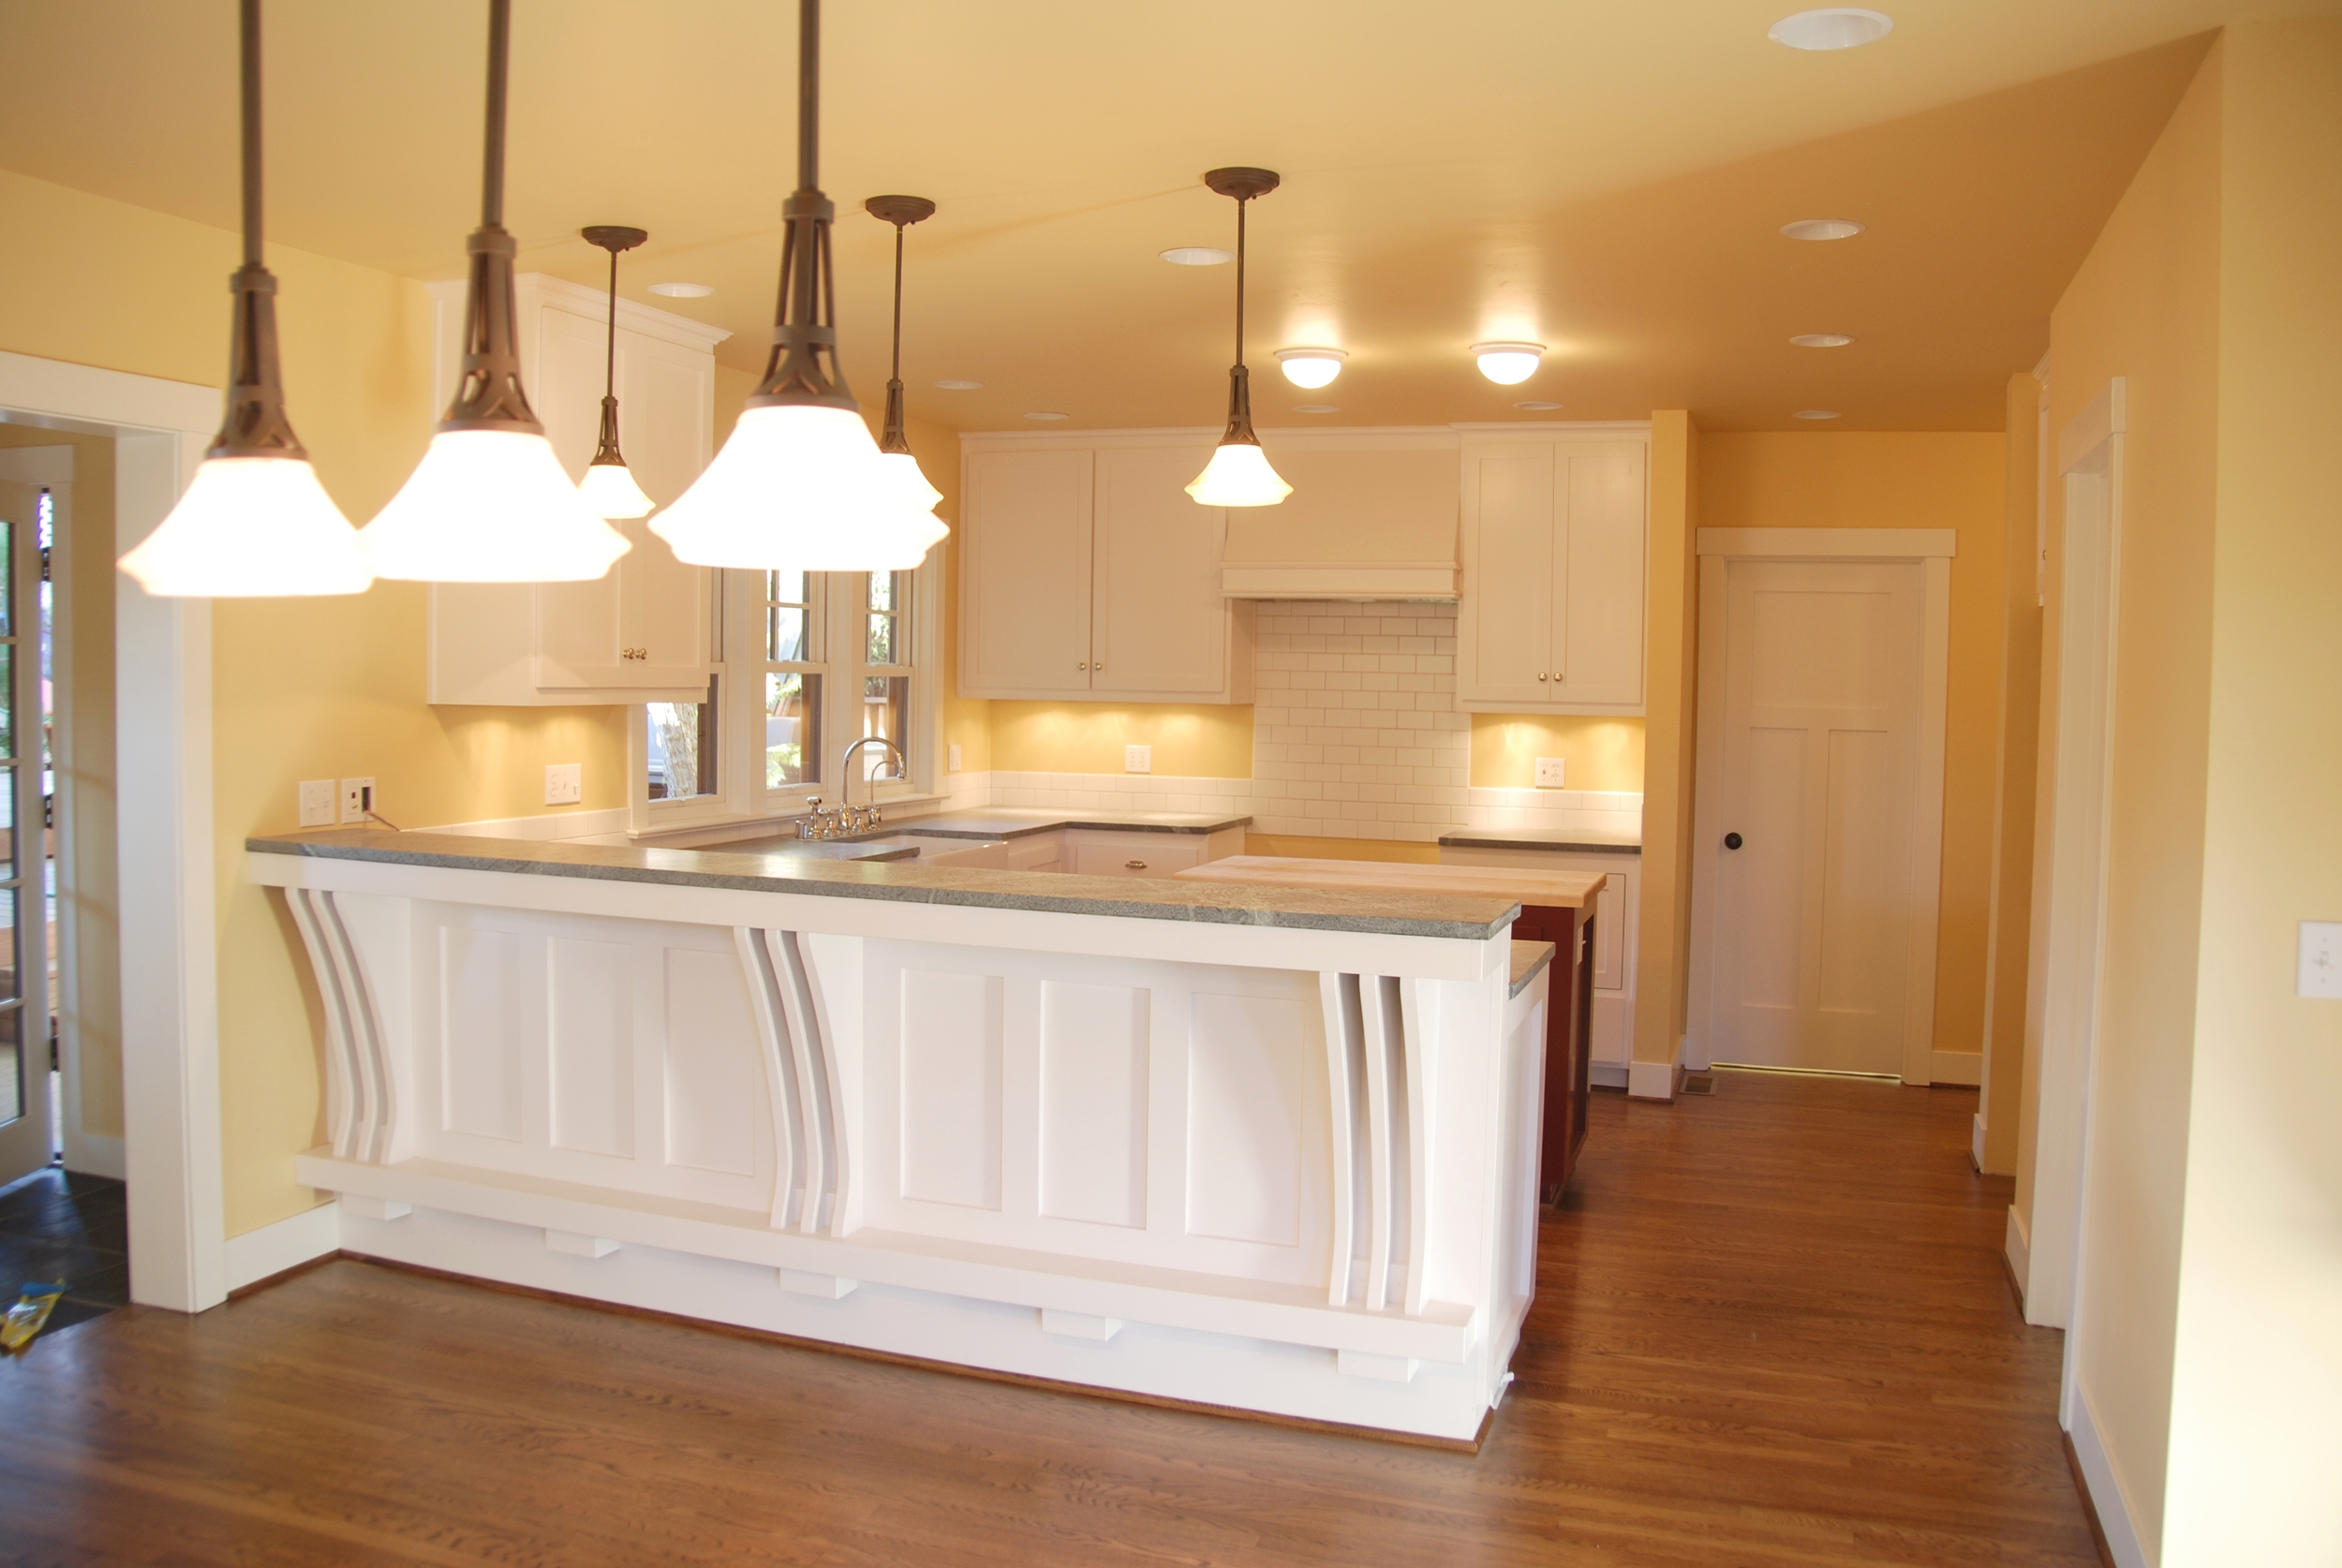 AFTER:   New Kitchen is spacious and flows into the new Dining space beautifully